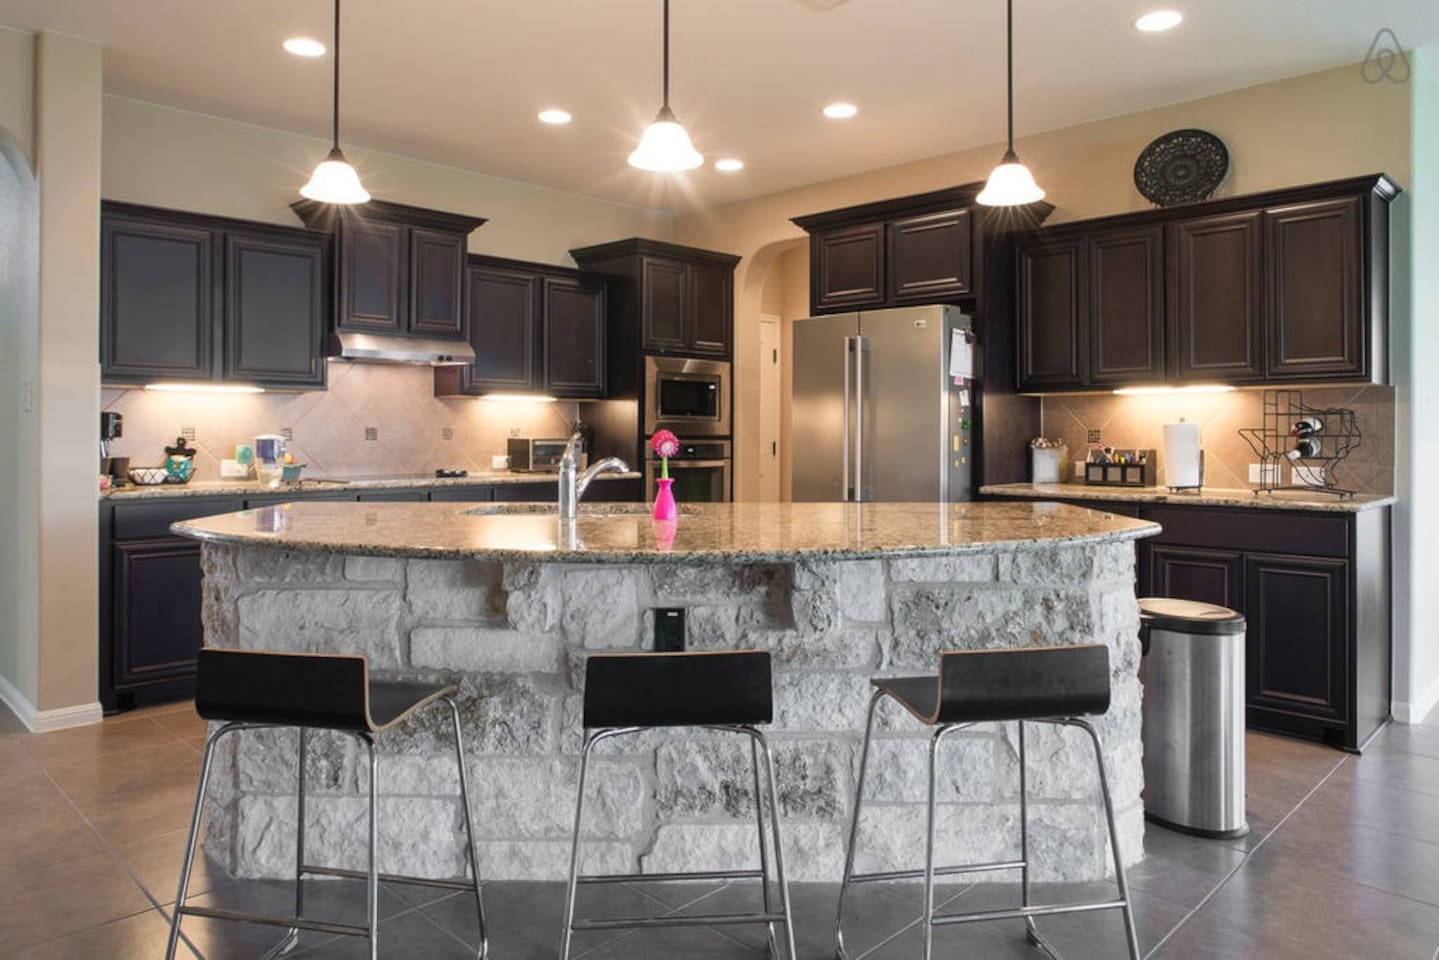 Kitchen (microwave & fridge access only), stone island w/ granite counter tops and bar stools.